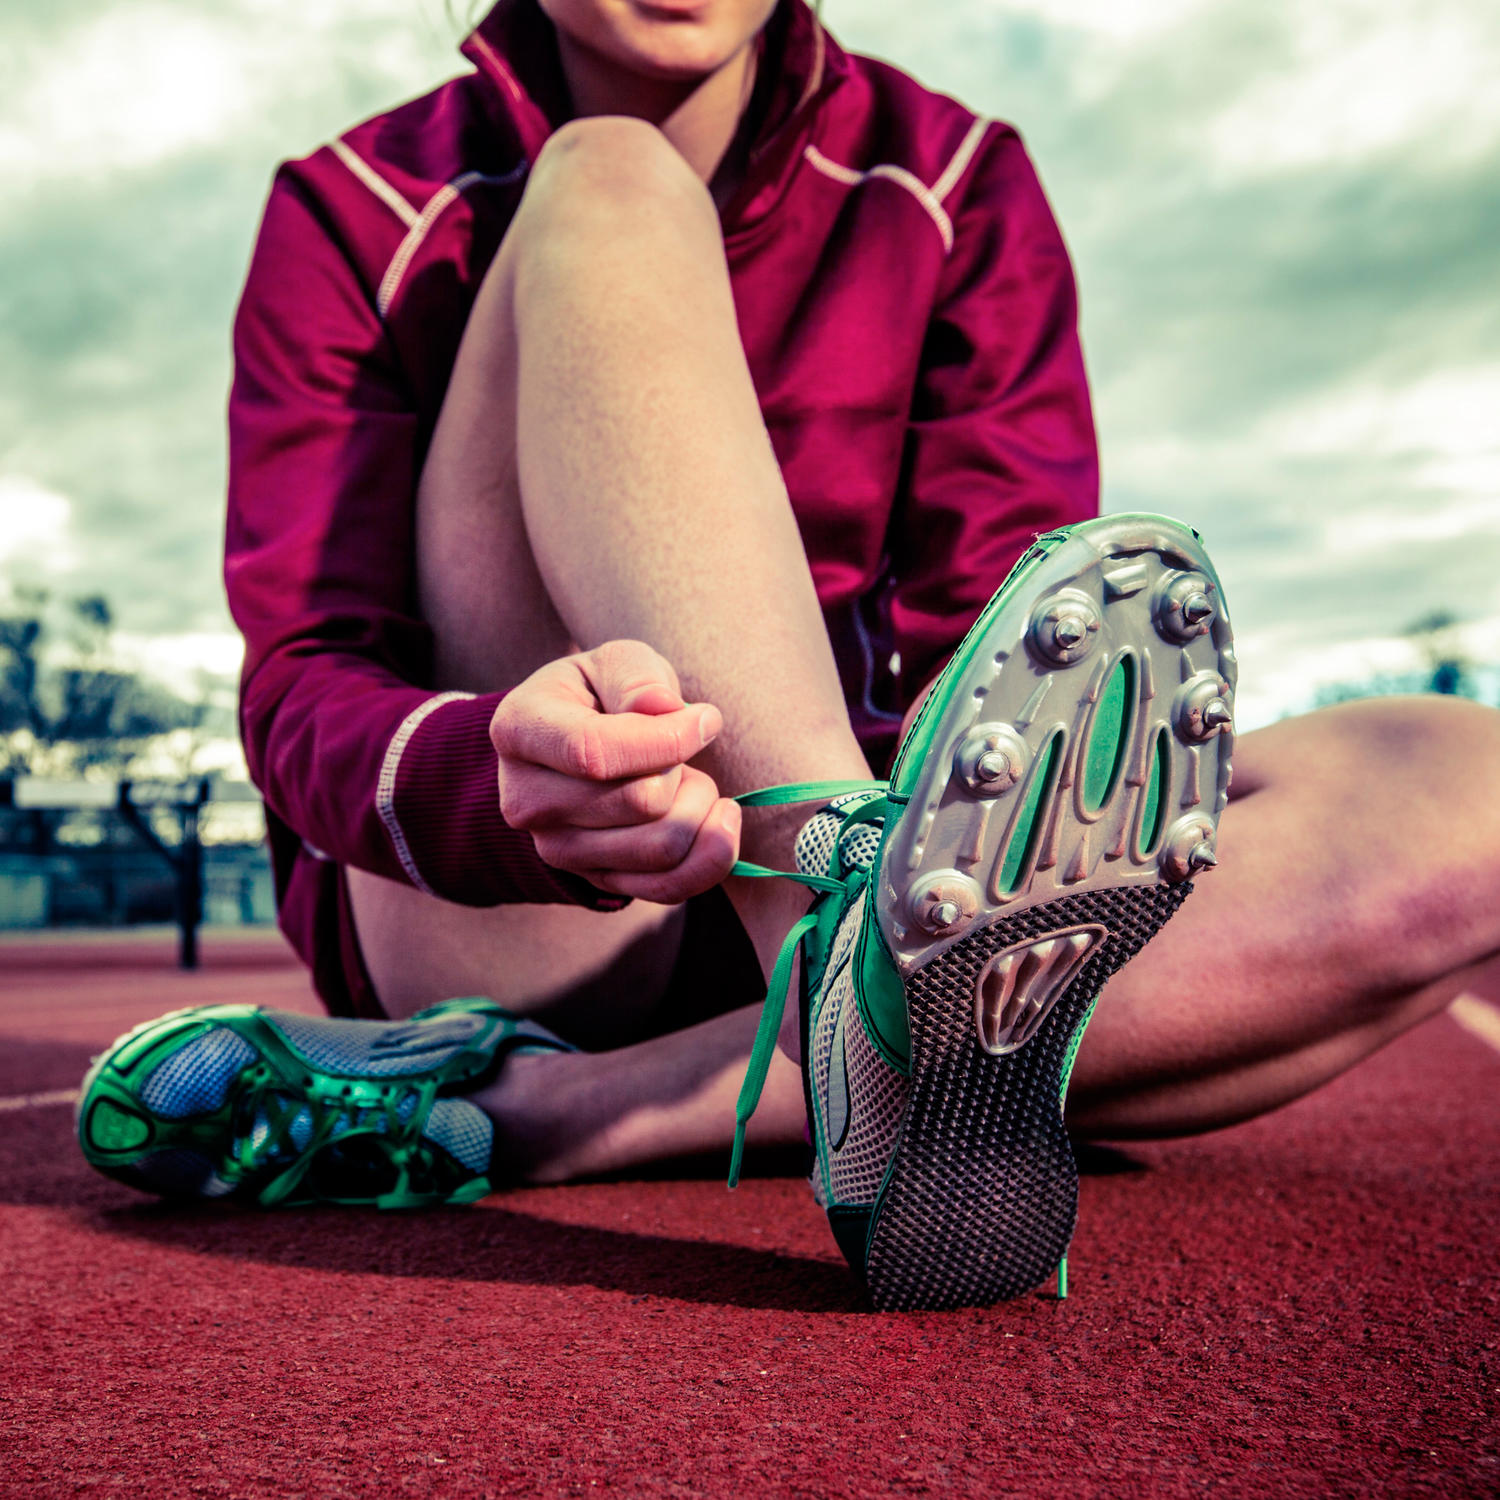 A Runner Shapes Up A Tired Staircase: Runner's Dilemma: Old Running Shoes Vs. Cross Trainers